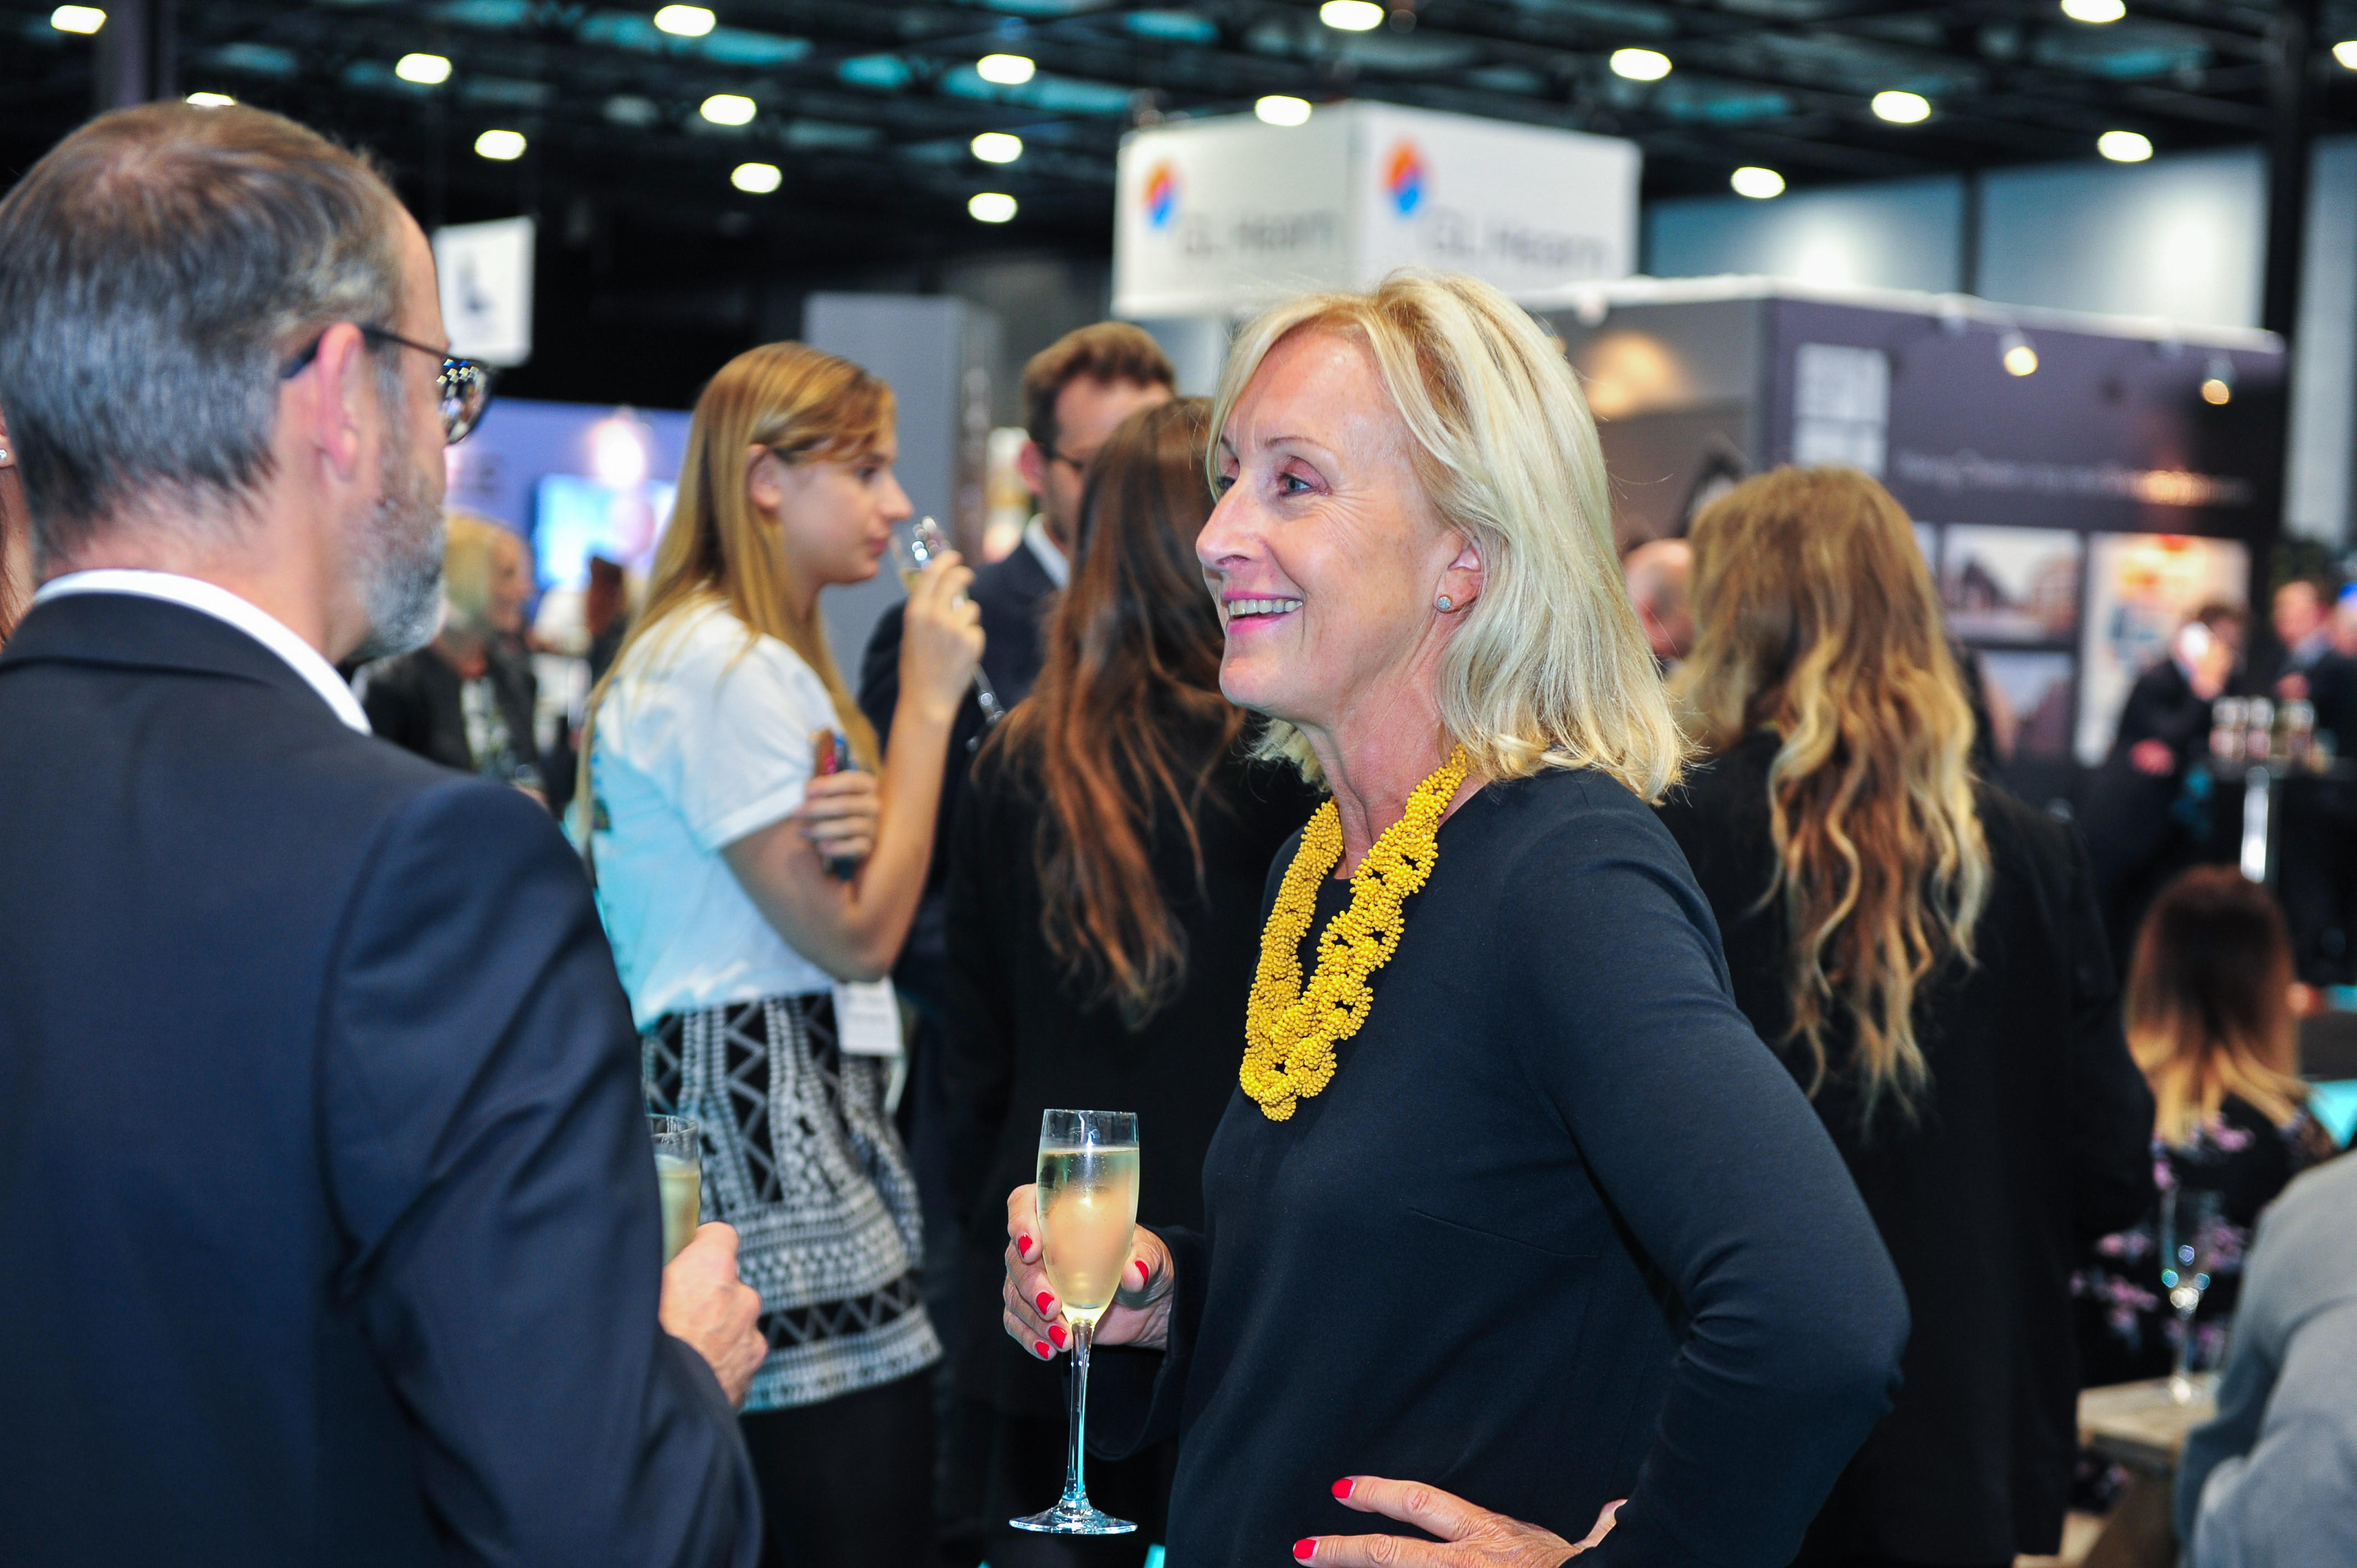 Giulia Bunting named as one of the most influential women in UK real estate